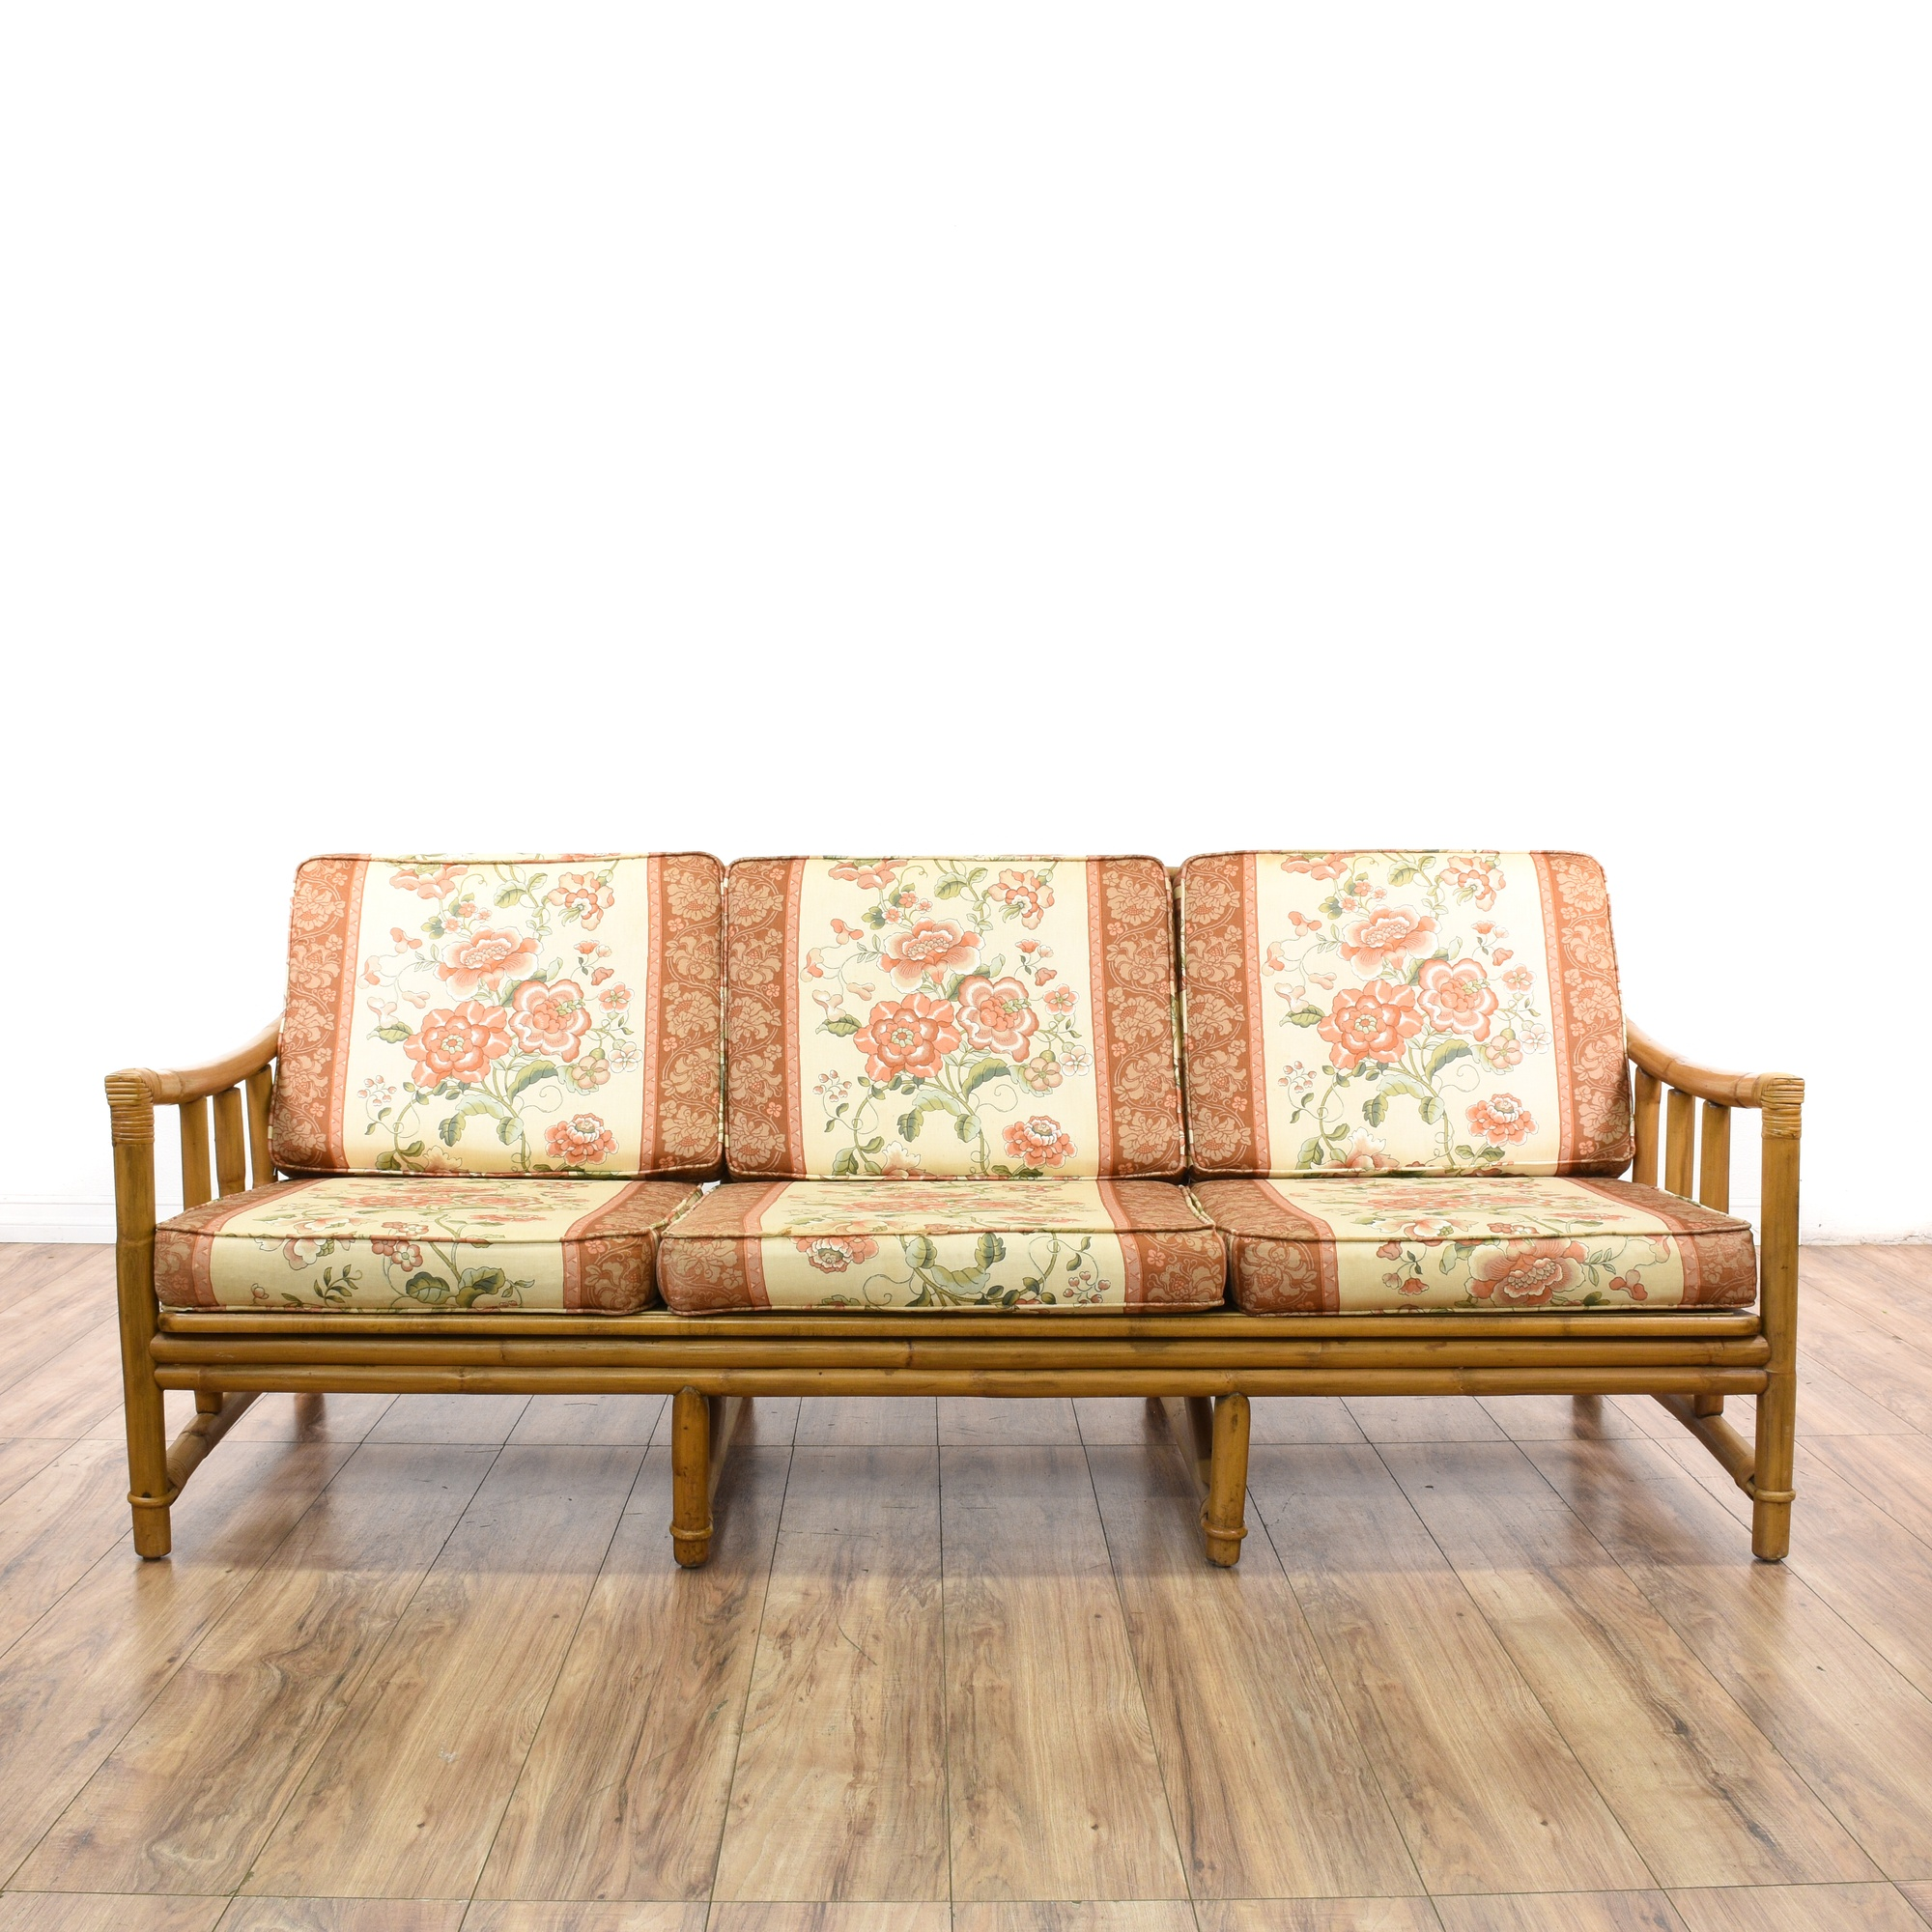 Quot Ficks Reed Co Quot Rattan Peony Floral Sofa Loveseat